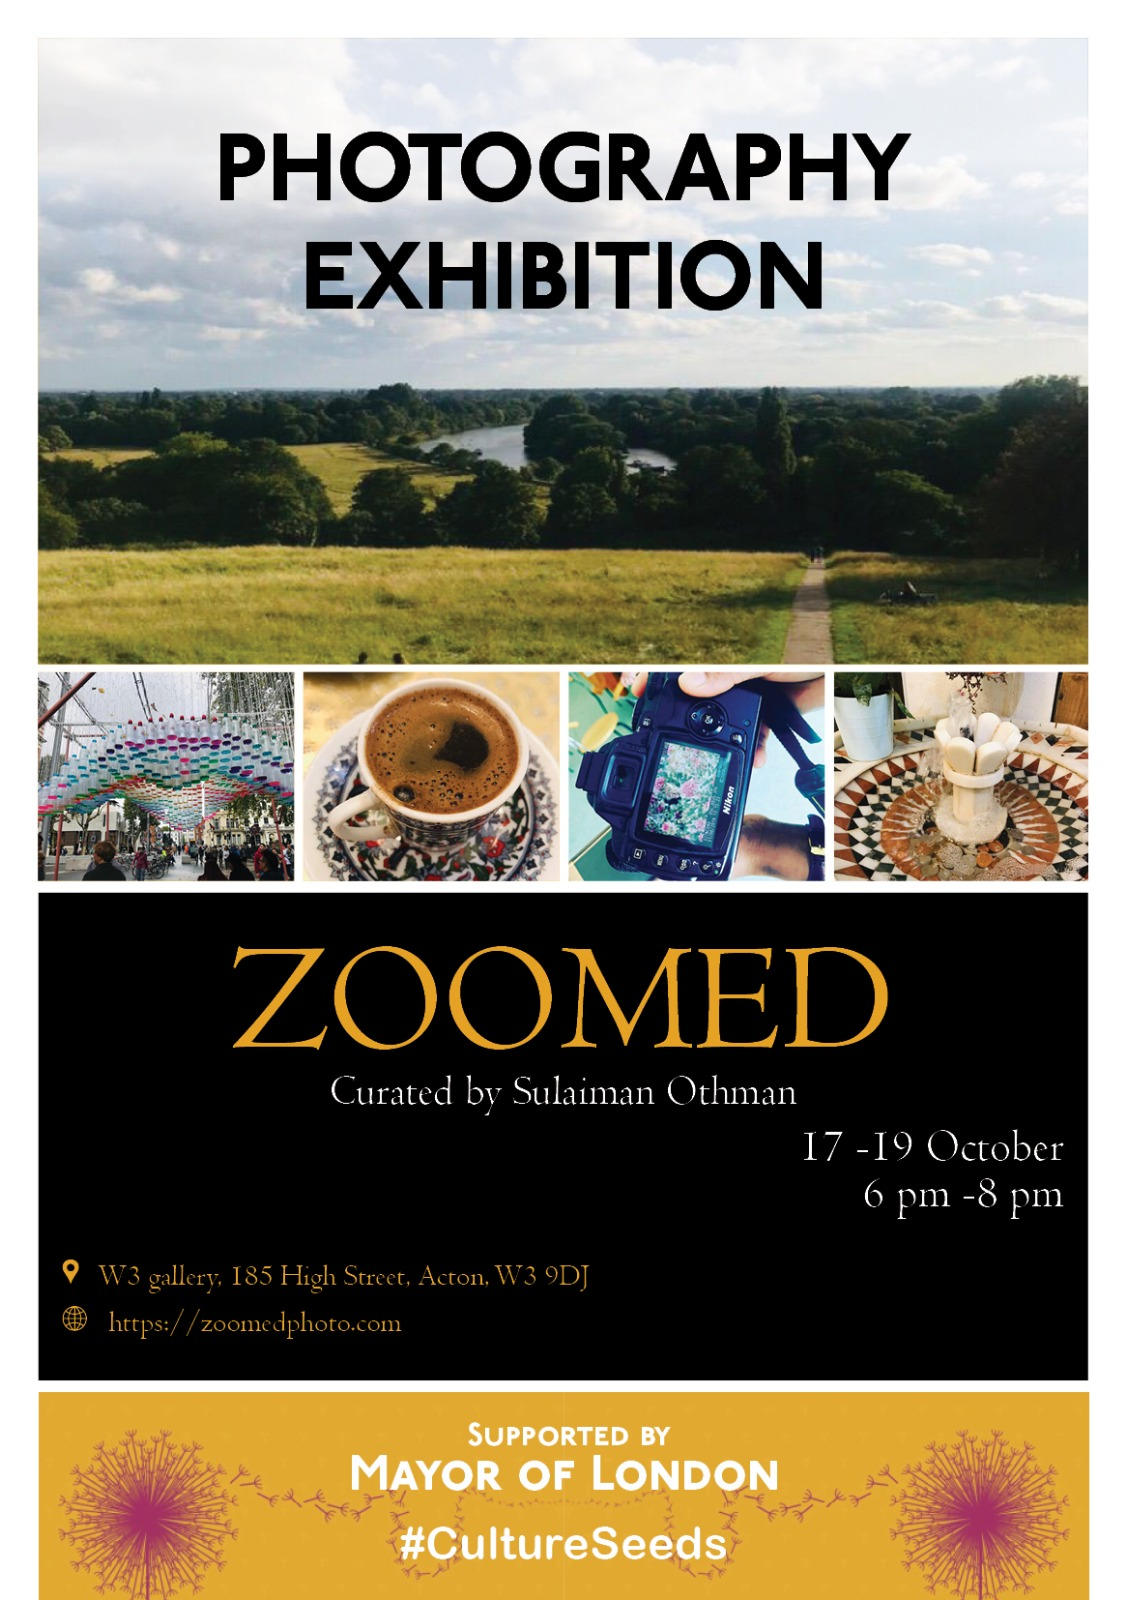 zoomed exhibition w3 gallery